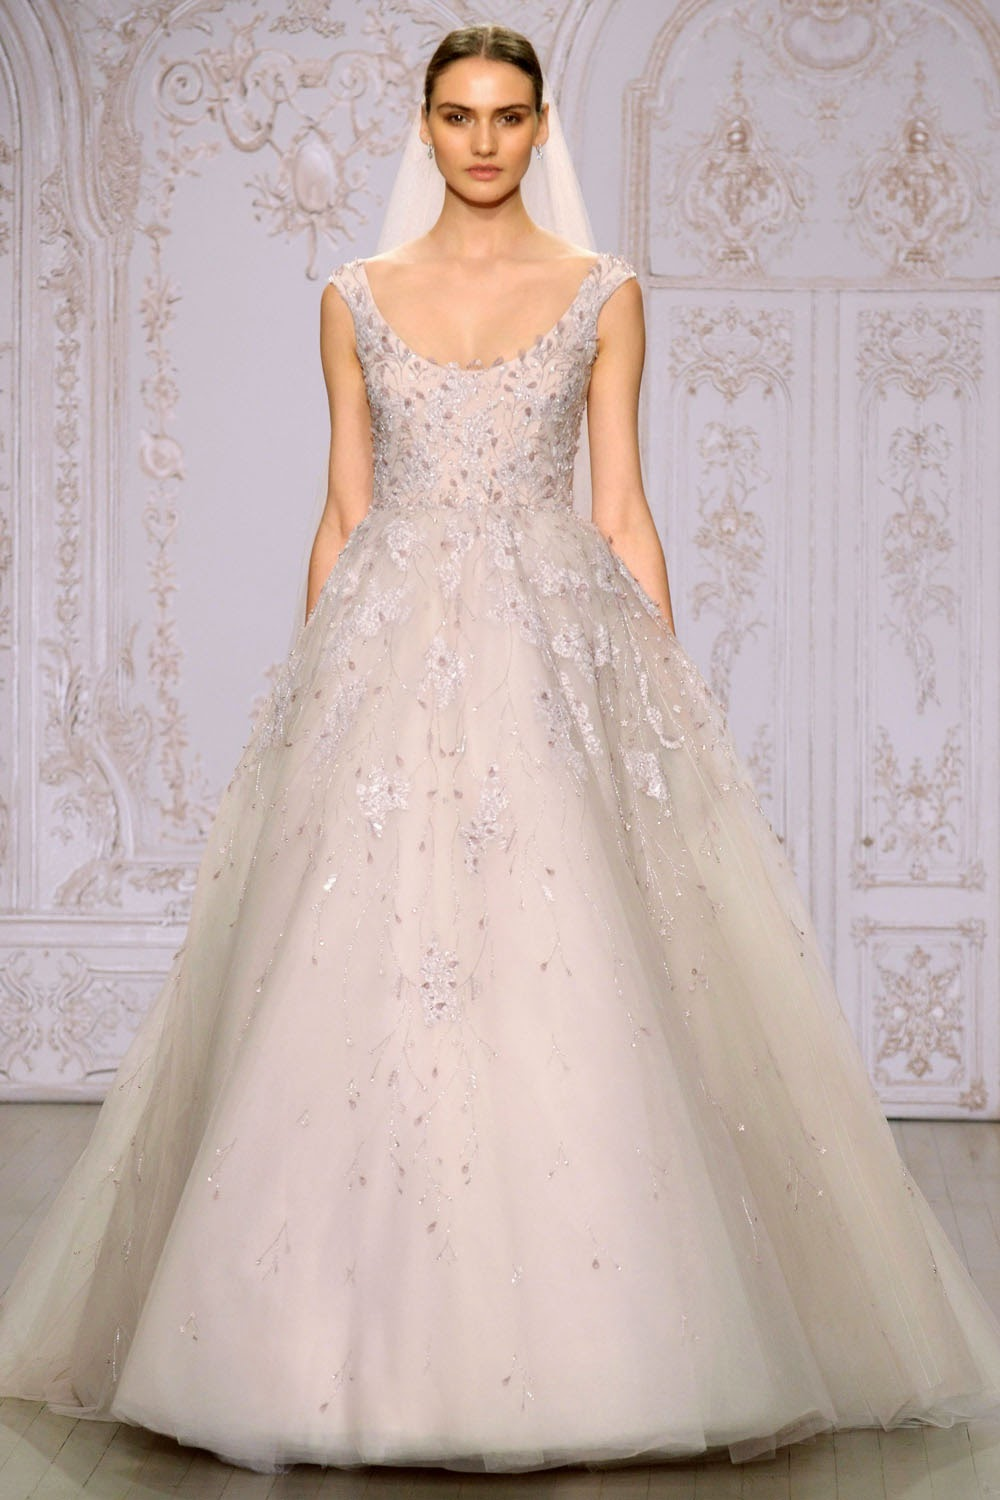 Monique lhuillier fall 2015 wedding dresses runway for Monique lhuillier wedding dress